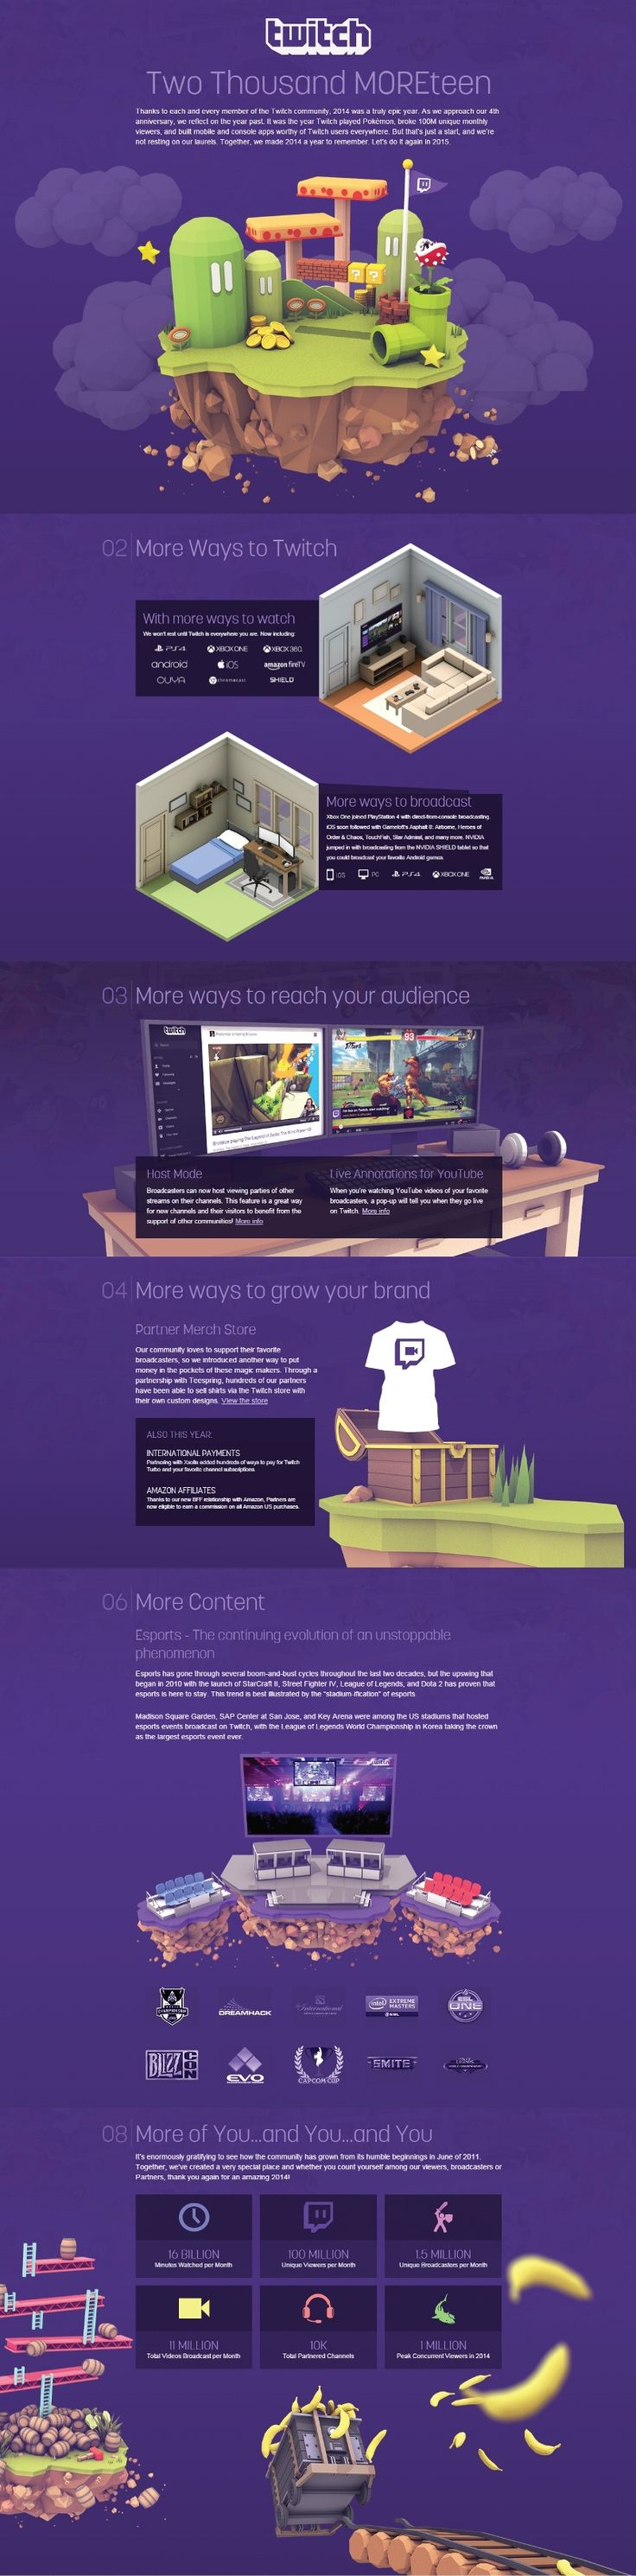 Twitch Retrospective. For gamers. #webdesign (More design inspiration at www.aldenchong.com)